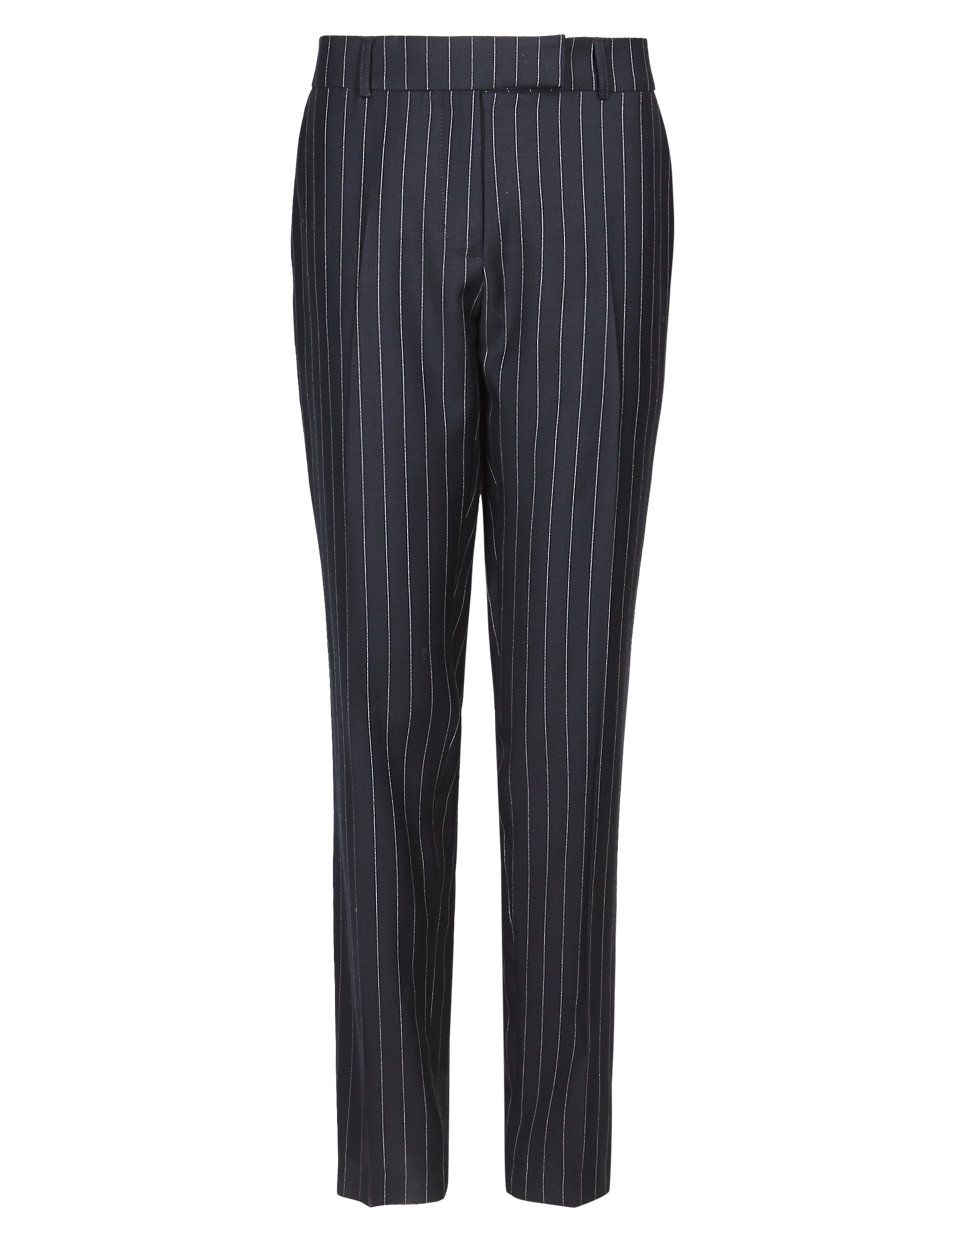 M /& S BEST OF BRITISH COLLECTION PURE NEW WOOL PINSTRIPED SLIM LEG TROUSERS